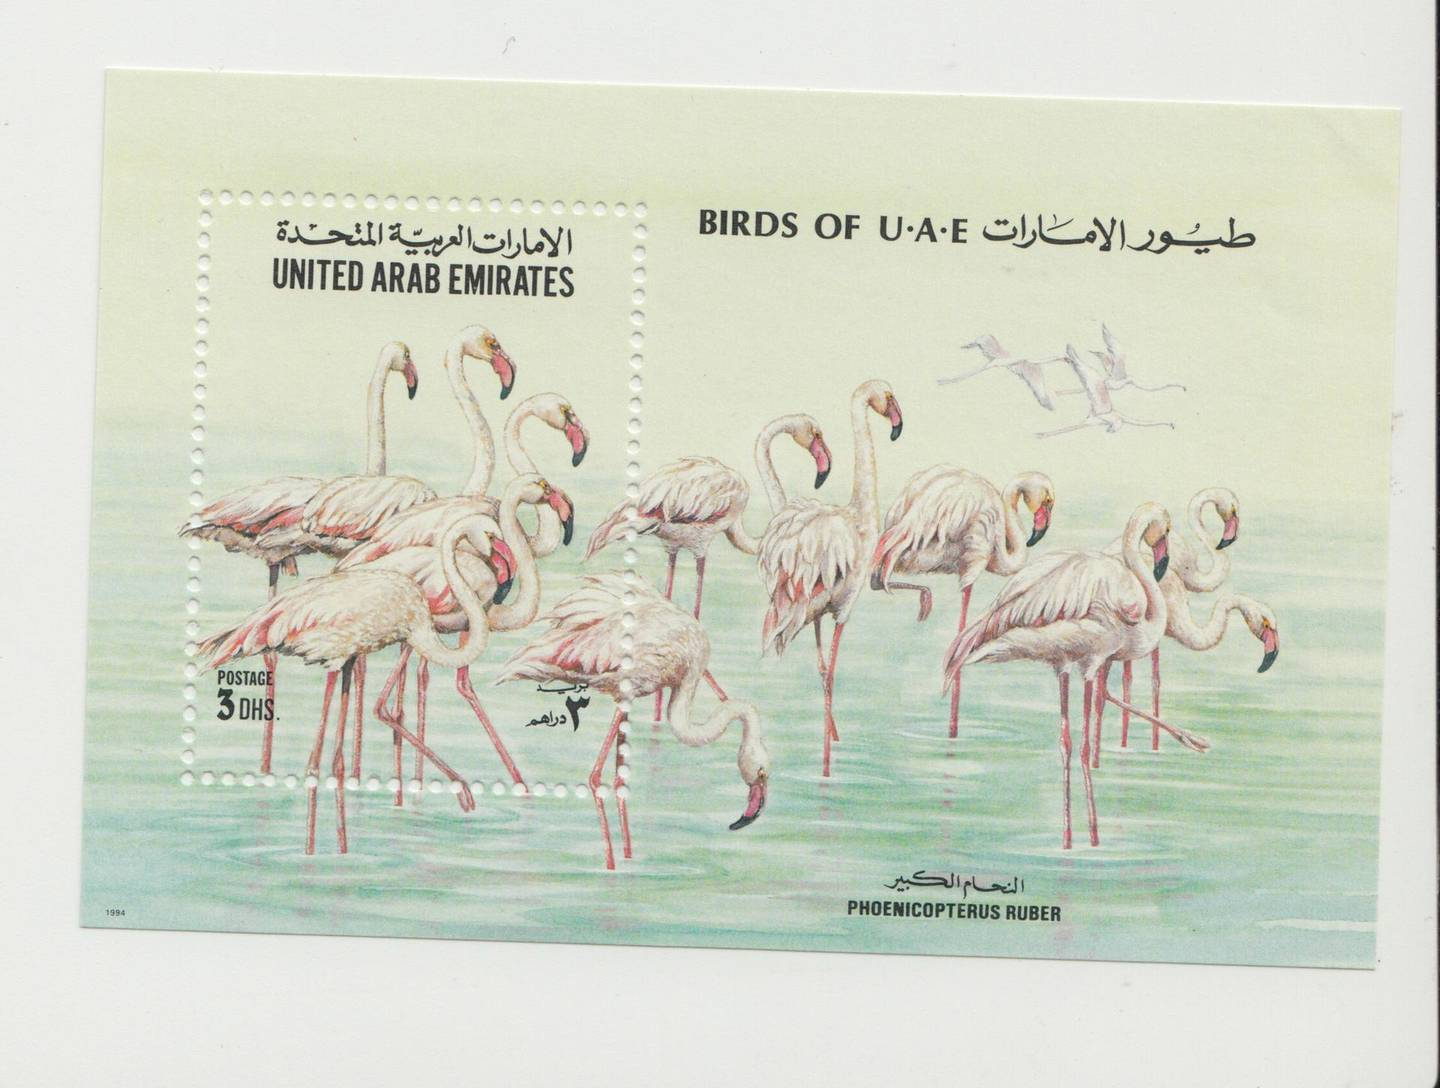 DUBAI, UNITED ARAB EMIRATES, Jan 28, 2015. UAE stamps issued in 1994. Photo: Reem Mohammed / The National  for first focus story  *** Local Caption ***  RM_POSTAL_1994_02.jpeg